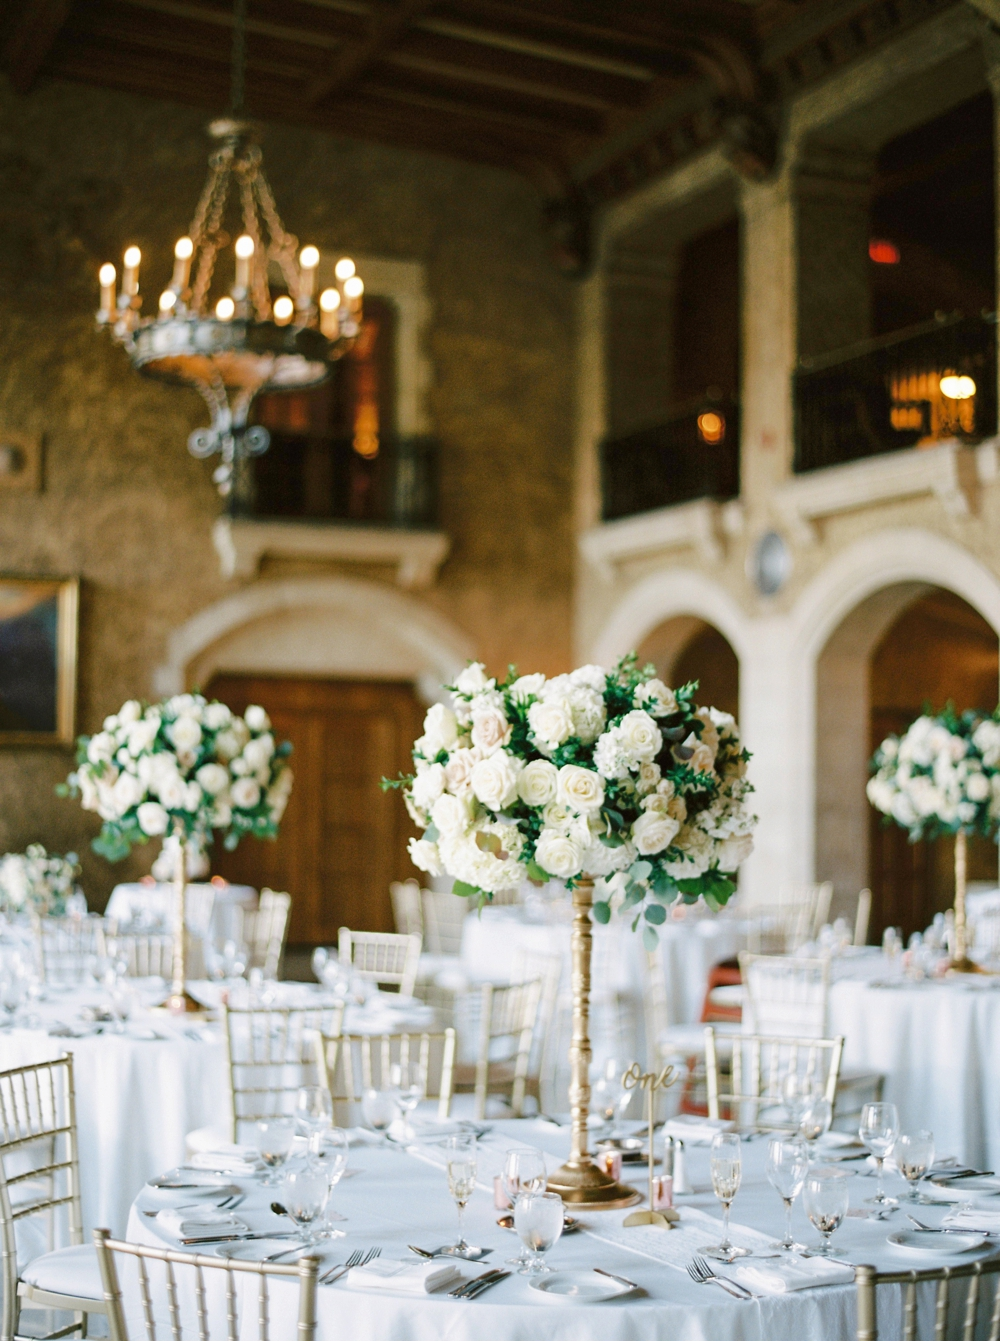 Mt Stephen Hall Reception at Fairmont Banff Springs Hotel | Banff Rocky Mountain Wedding Photographers | Justine Milton fine art film photography